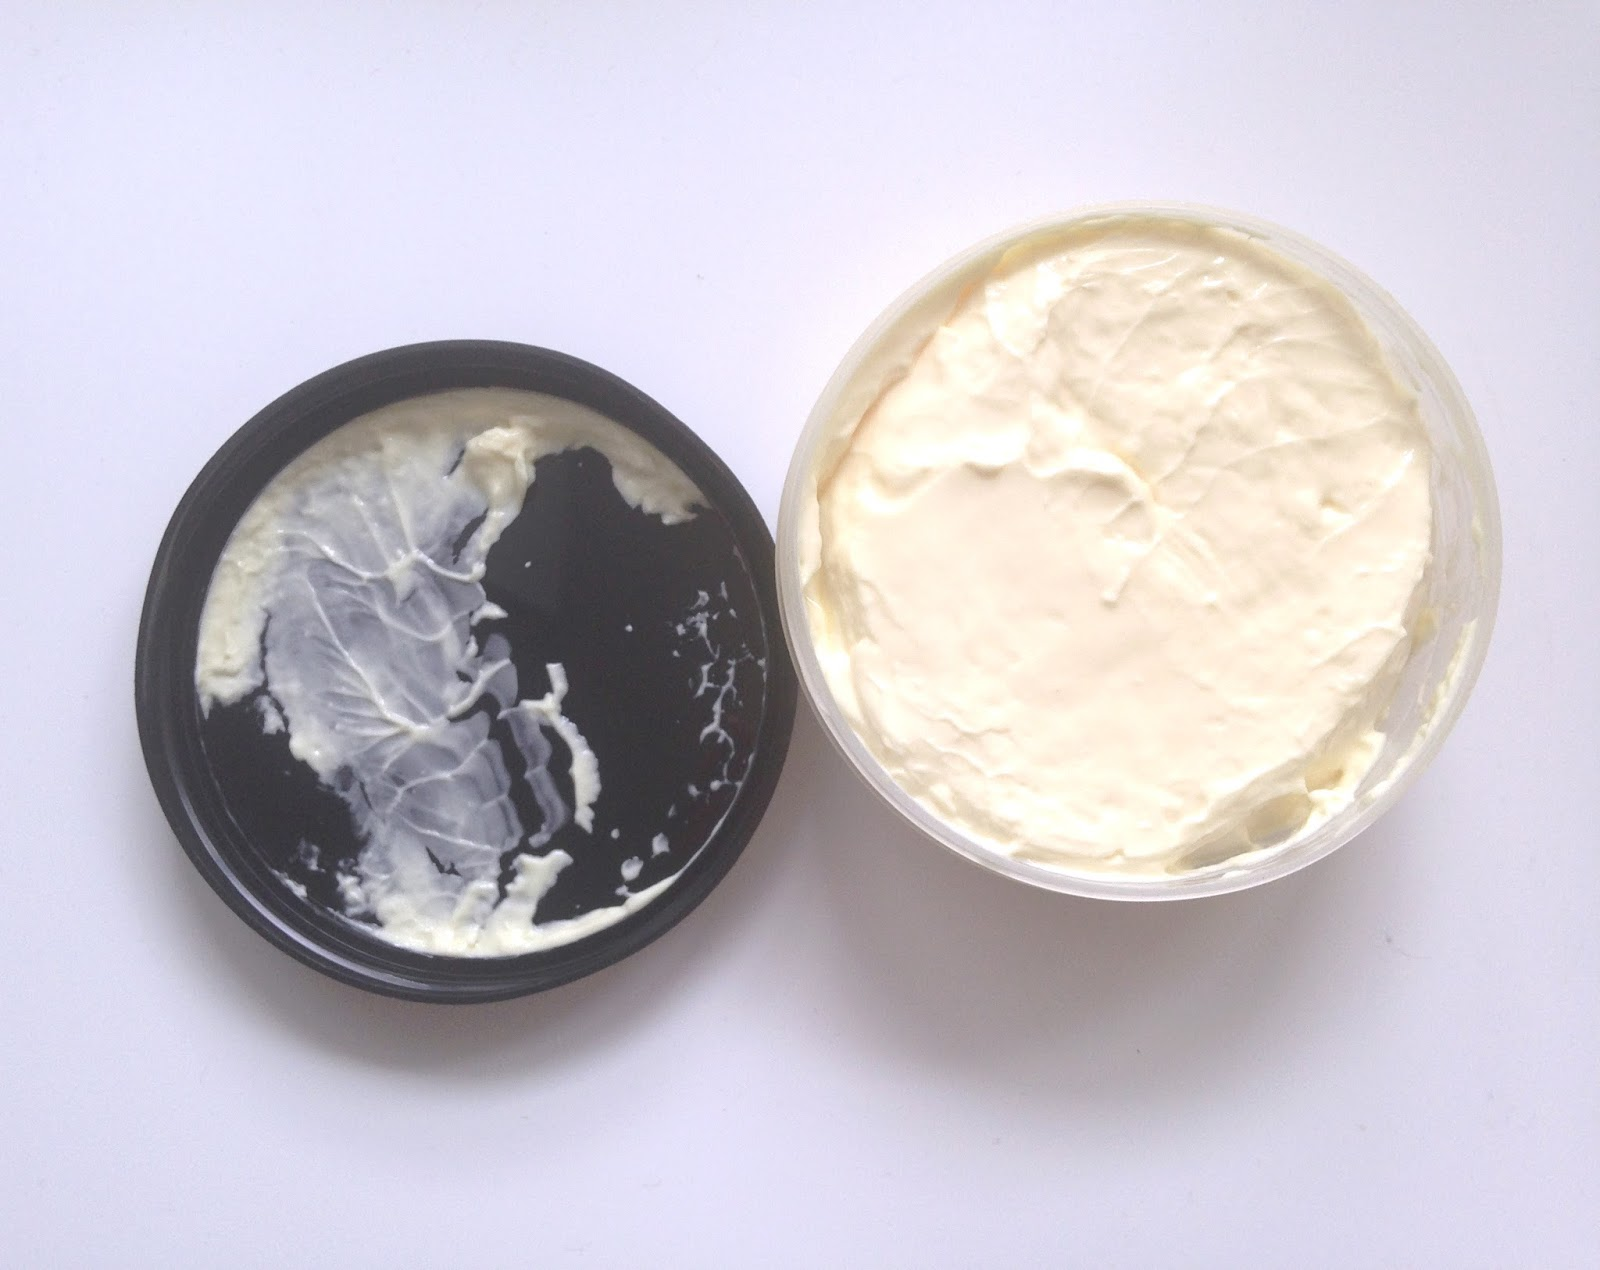 Treaclemoon The Honeycomb Secret Body Butter